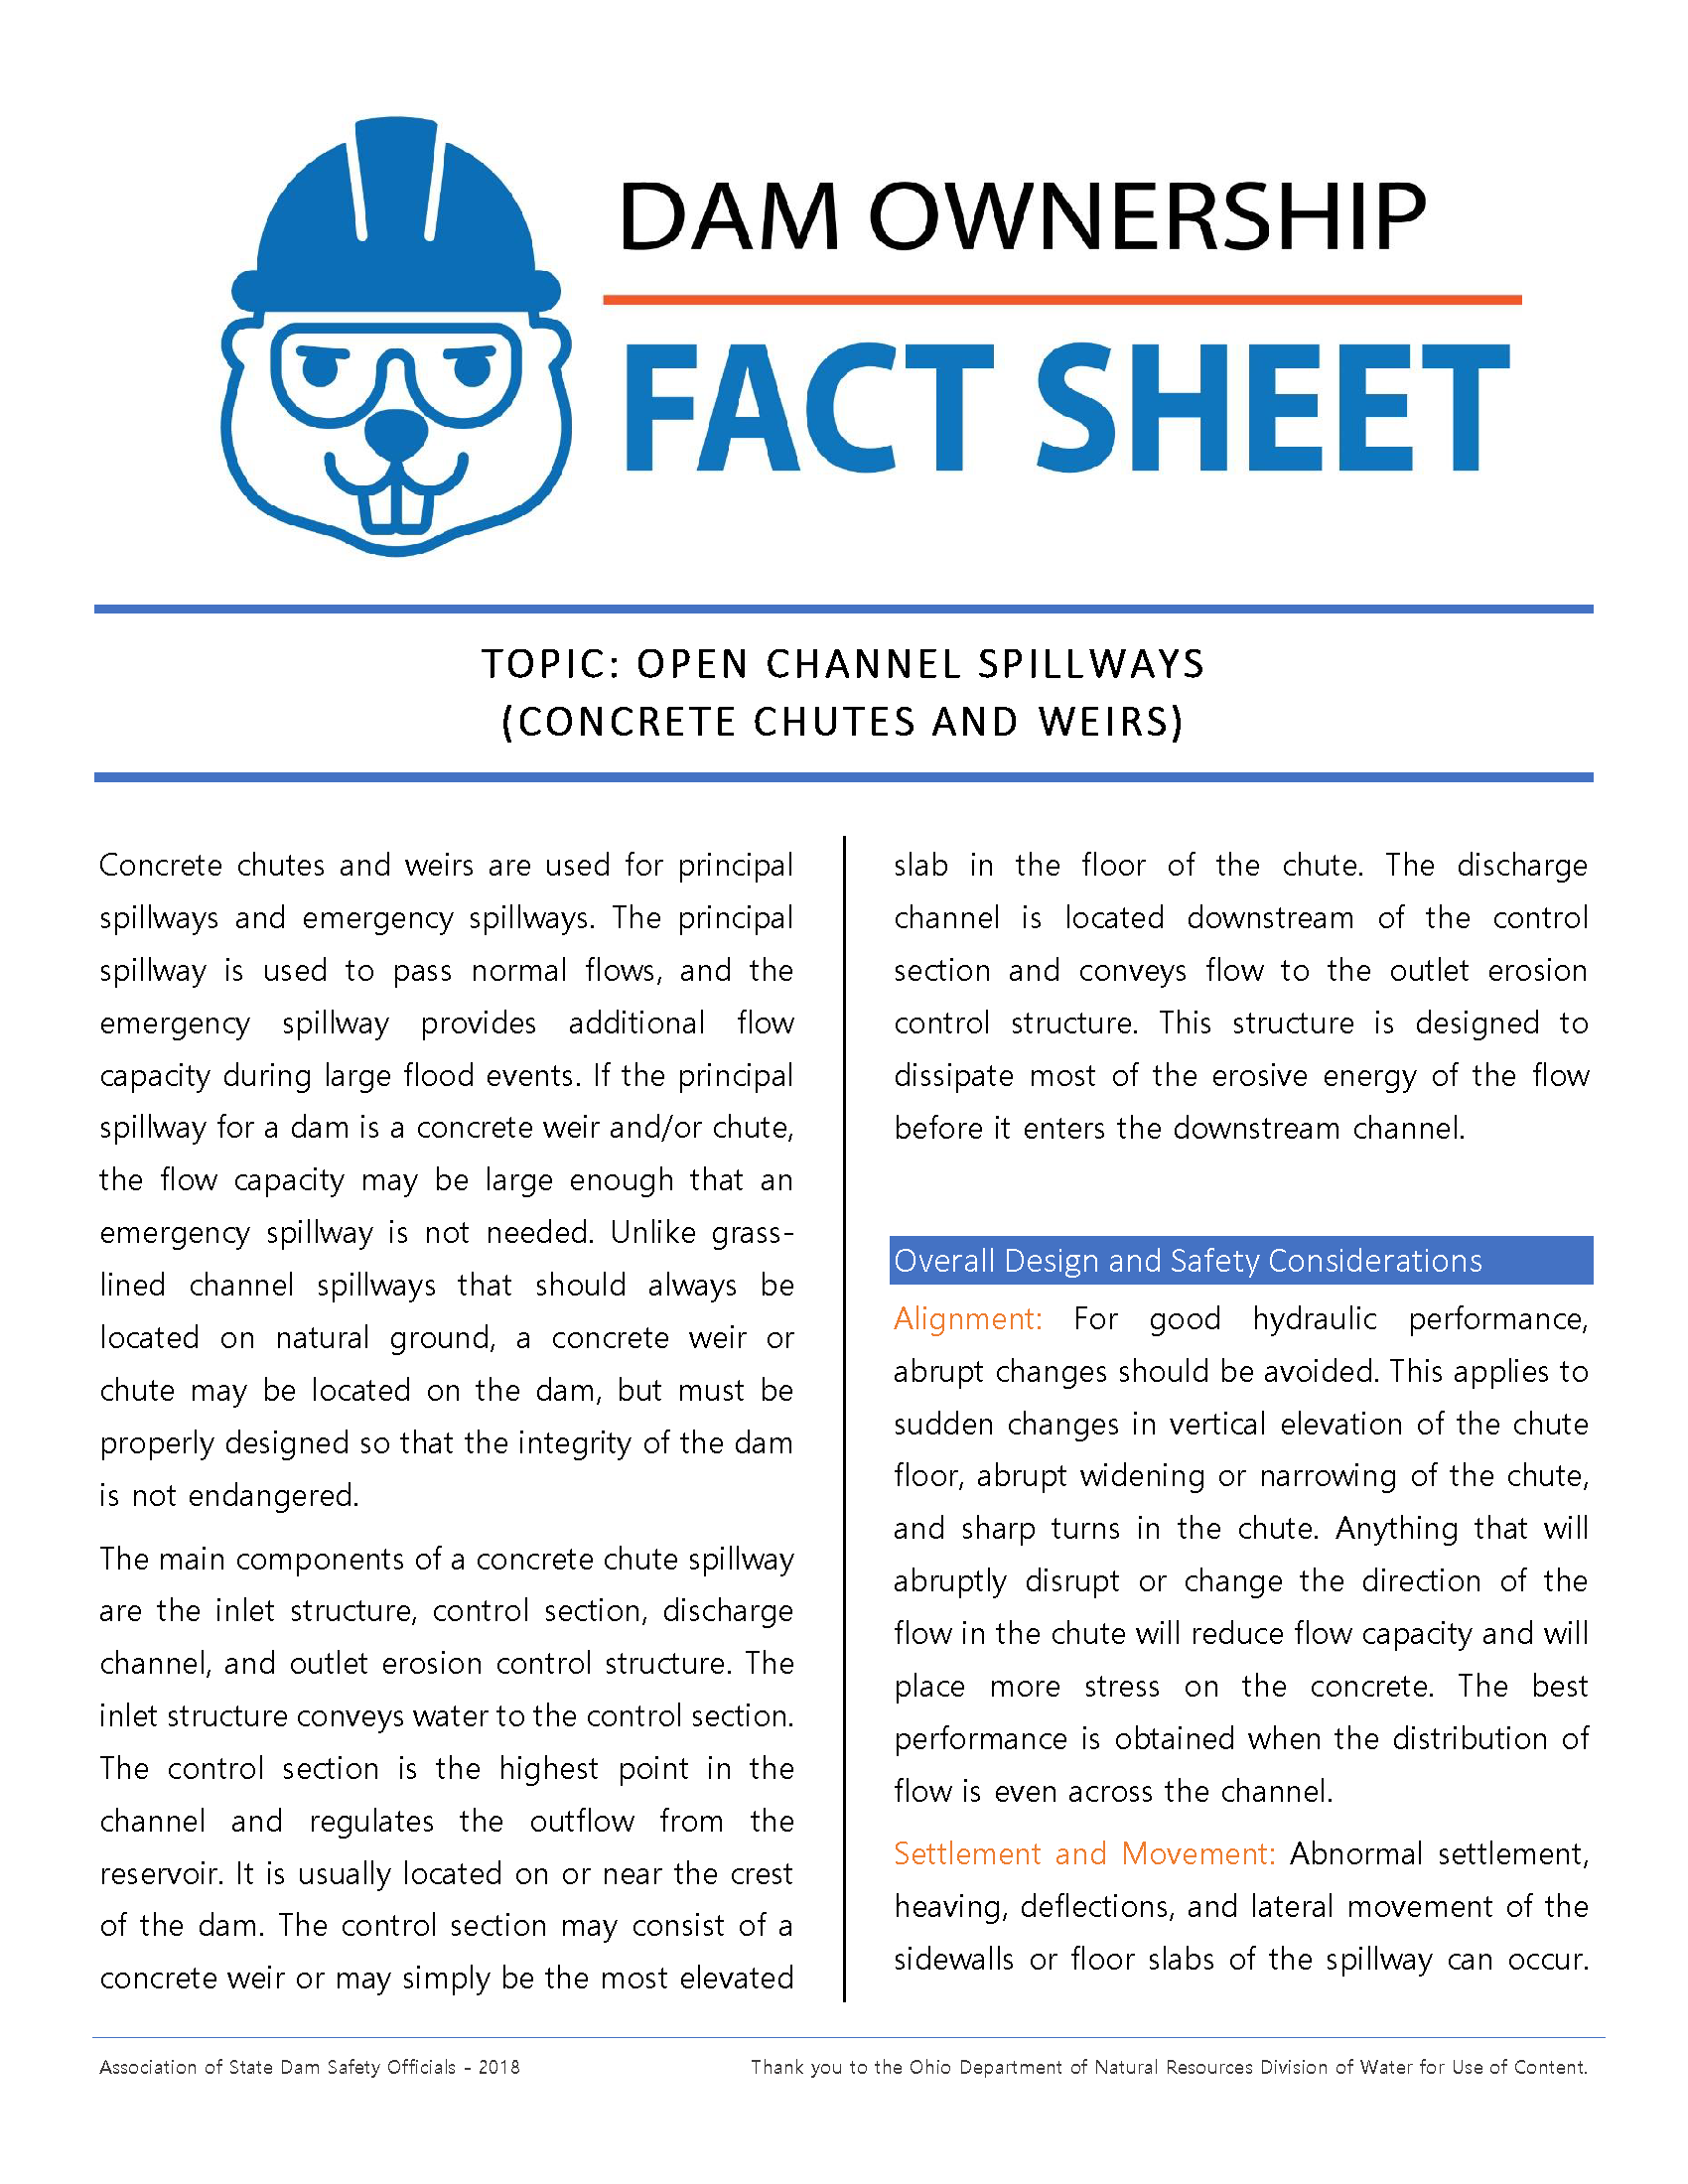 Open Channel Spillways - Chutes and Weirs - Fact Sheet 2018_Page_1.png